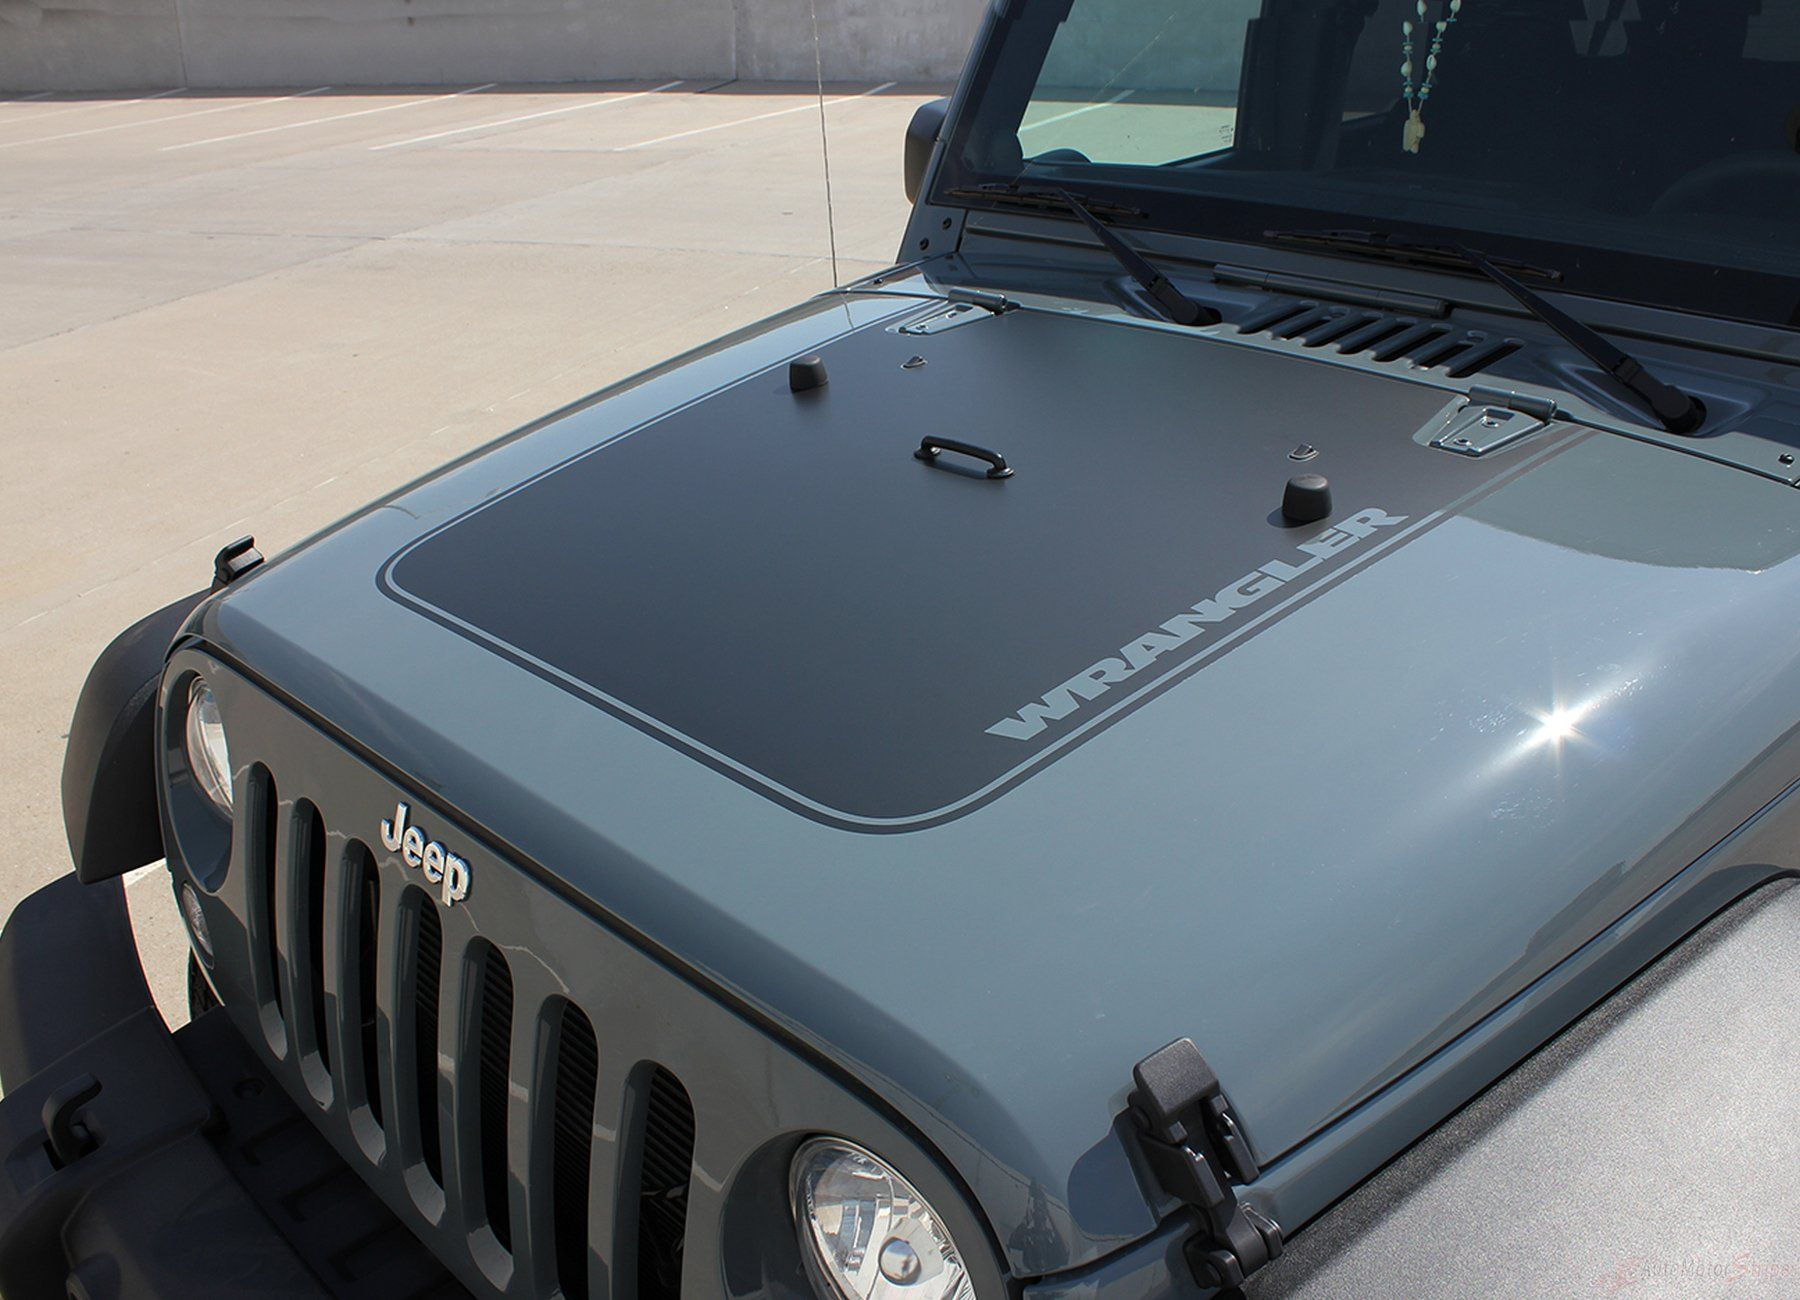 2007 2017 jeep wrangler outfitter oem factory style hood blackout vinyl decal graphic stripes [ 1800 x 1300 Pixel ]